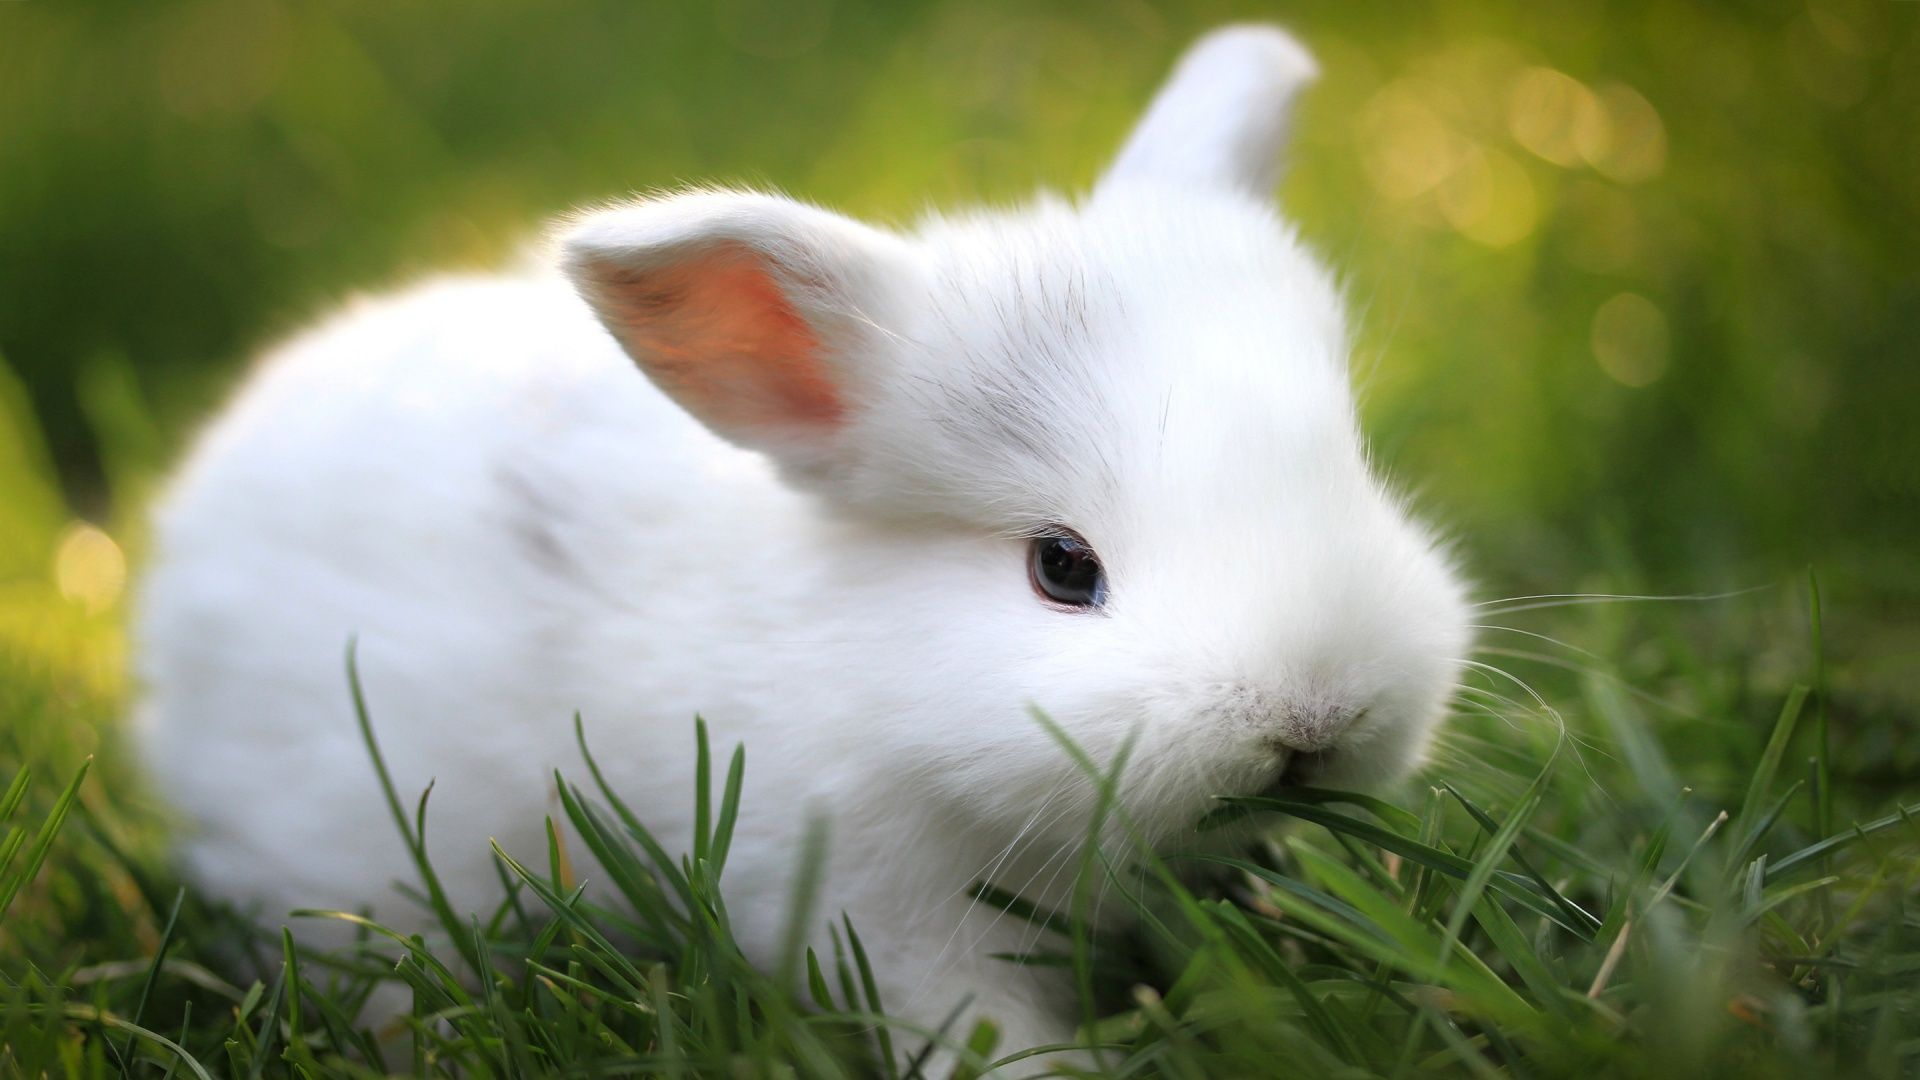 Cute Baby Animals Ever Wallpapers Top Free Cute Baby Animals Ever Backgrounds Wallpaperaccess